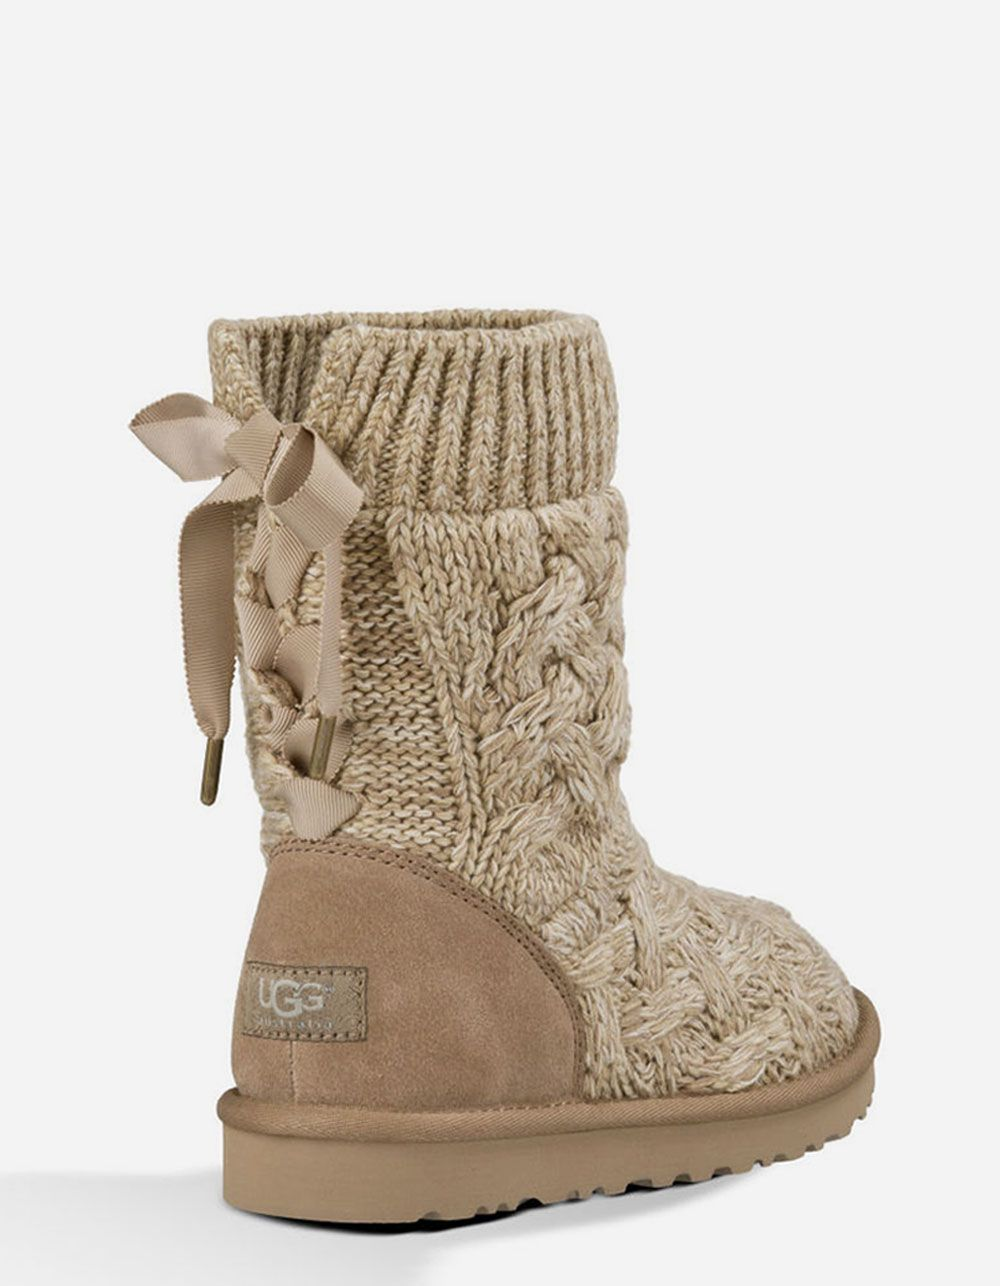 Ugg Outfit Outlet Only 39 For Christmas Gift Press